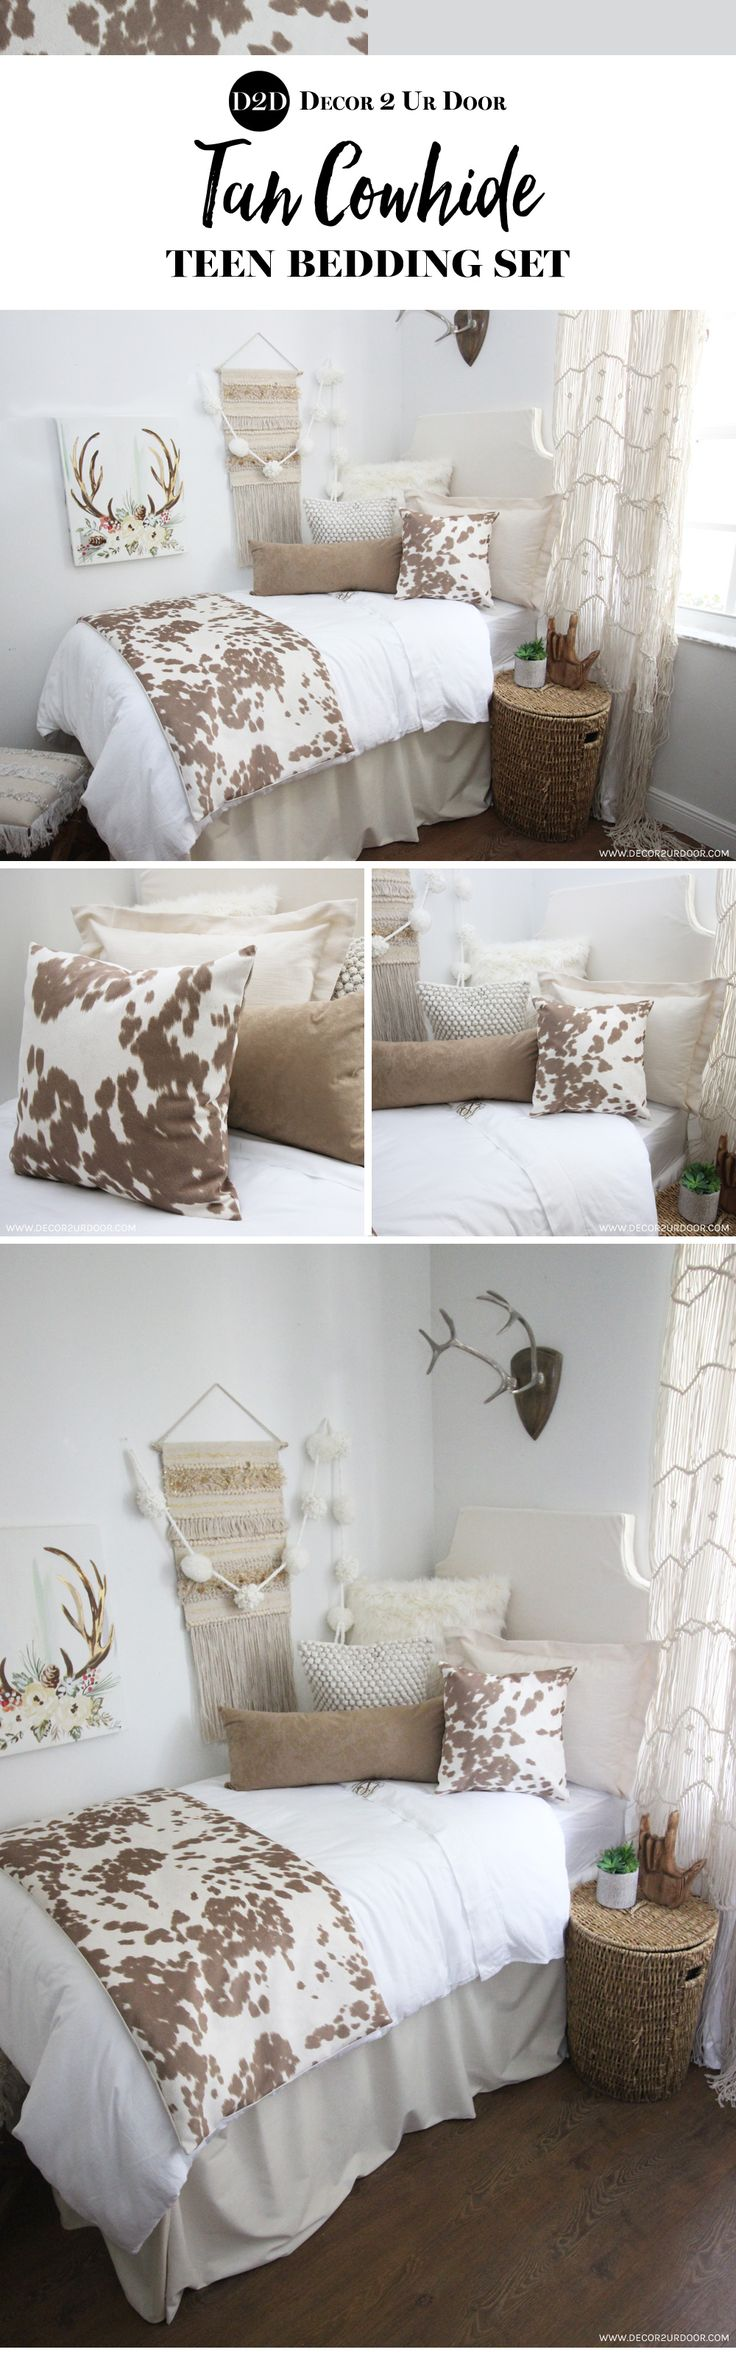 best 25+ rustic girls bedroom ideas on pinterest | rustic wood